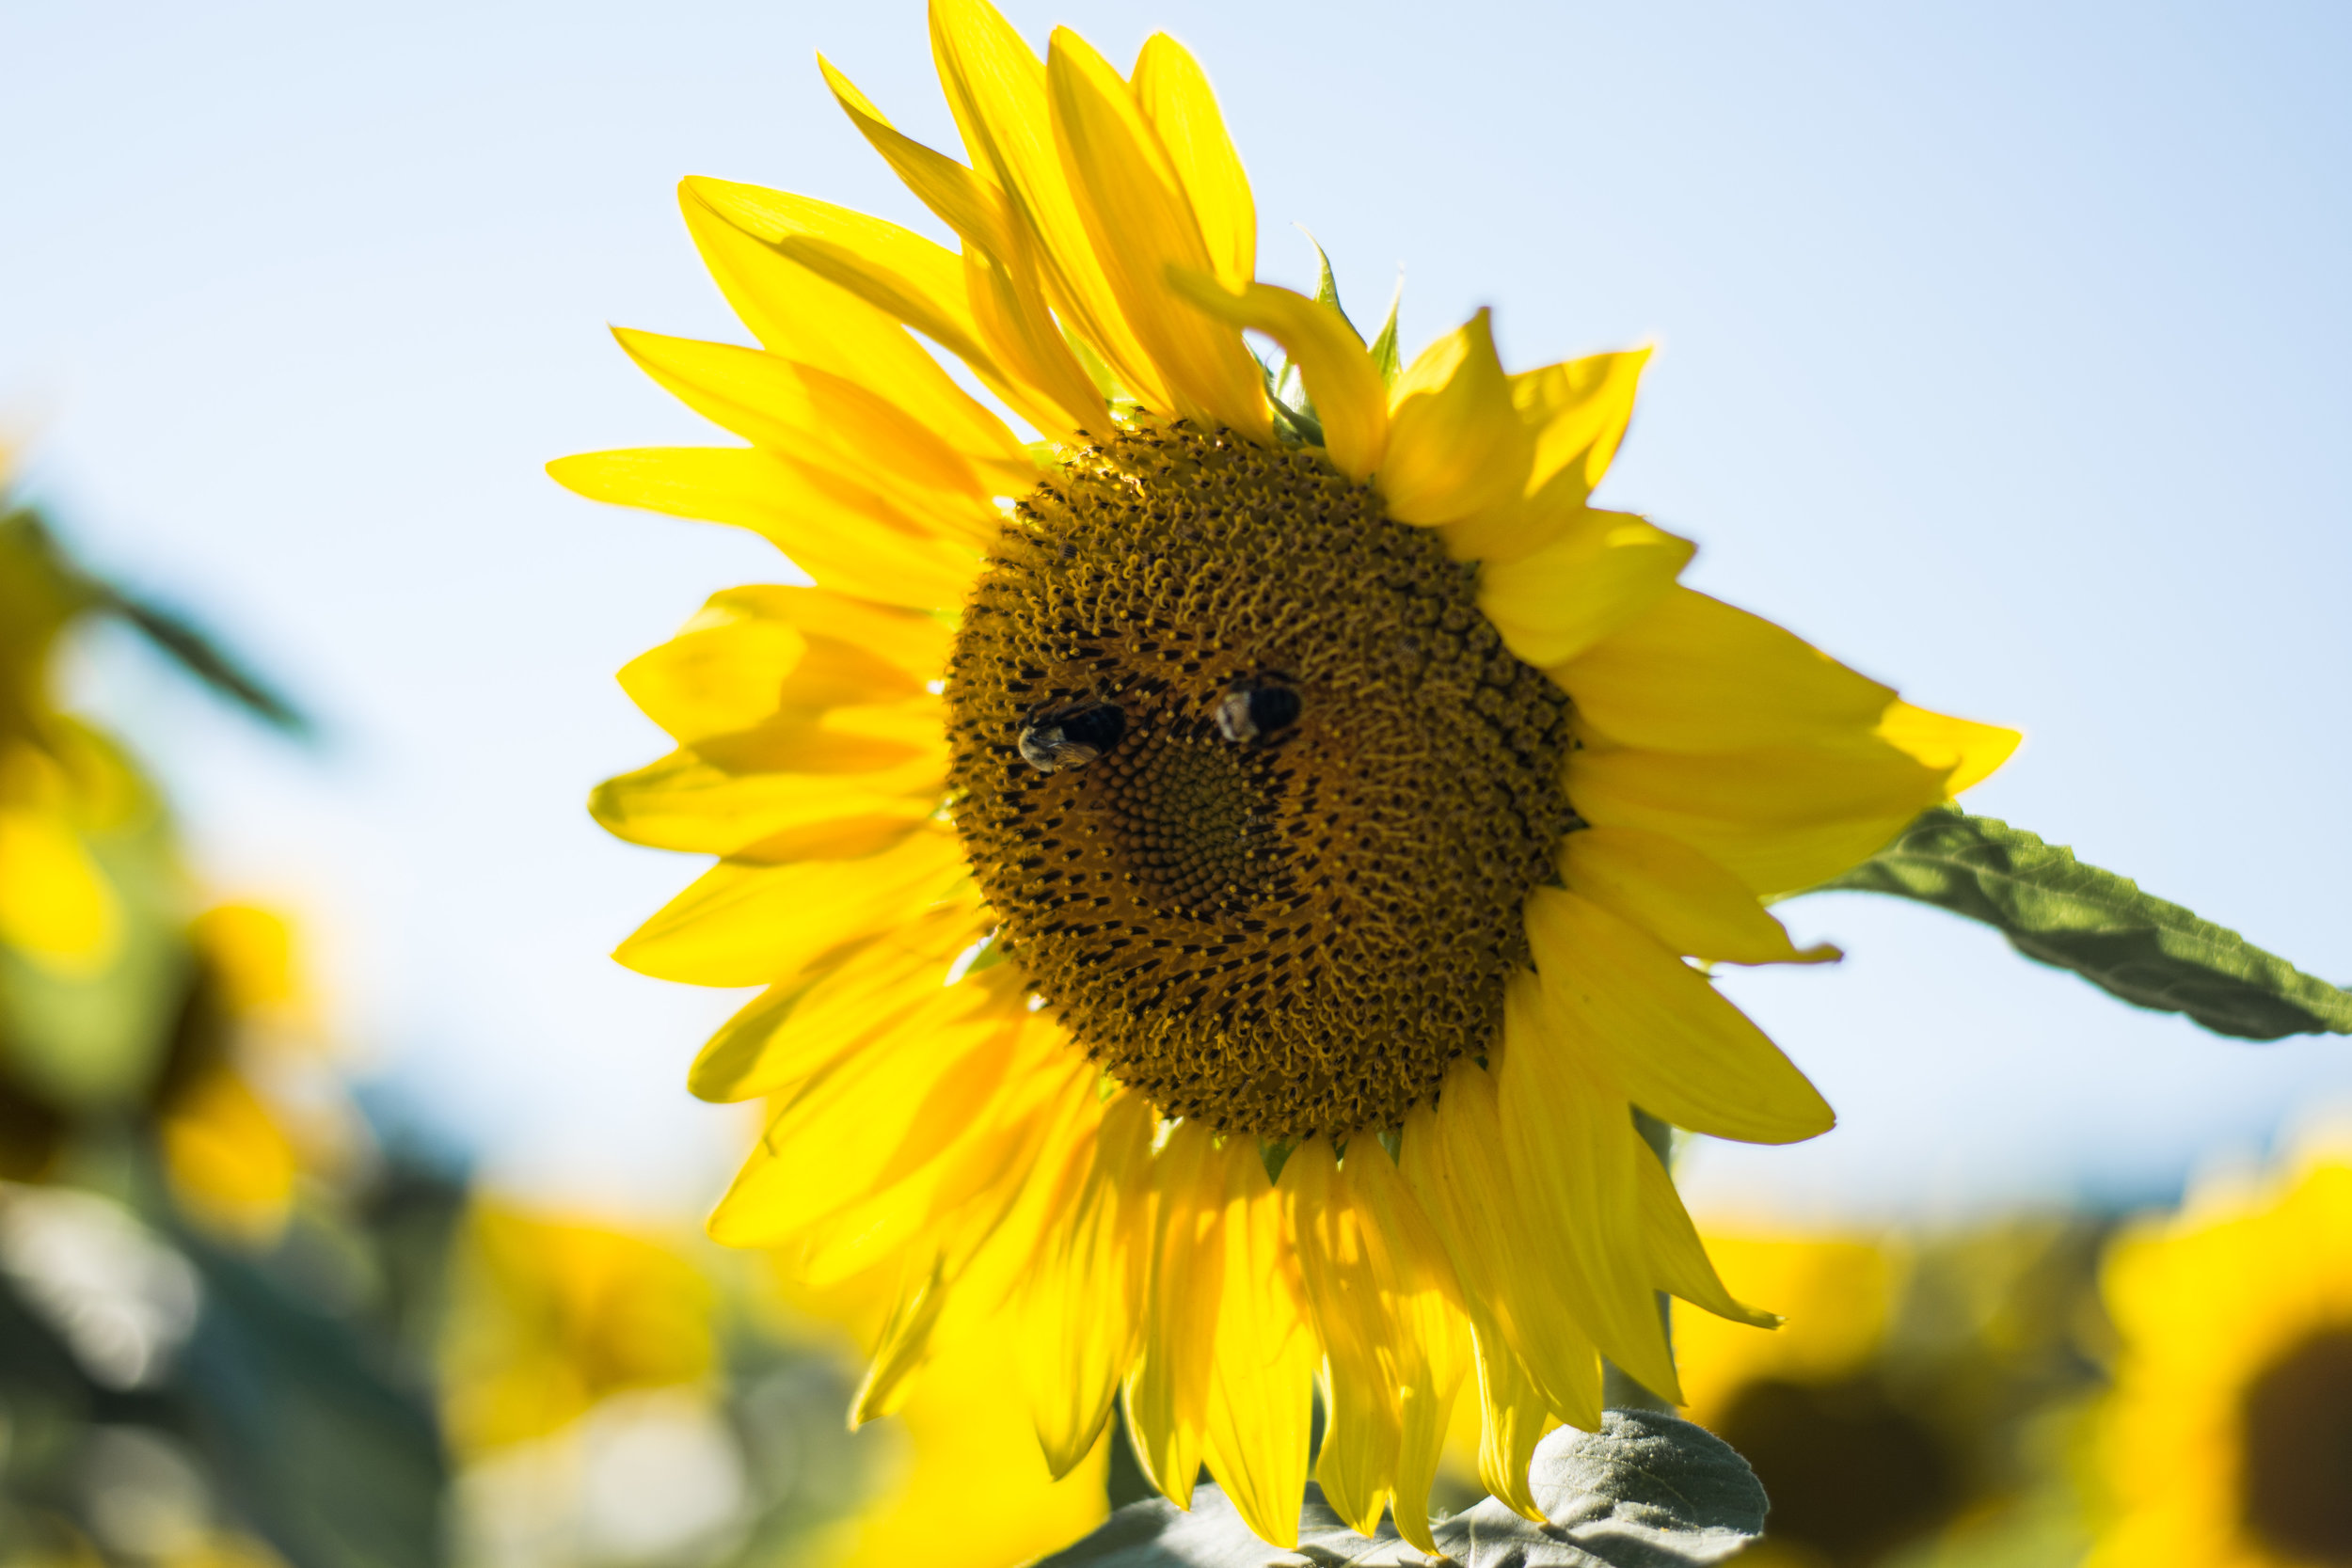 Sunflower-6.jpg